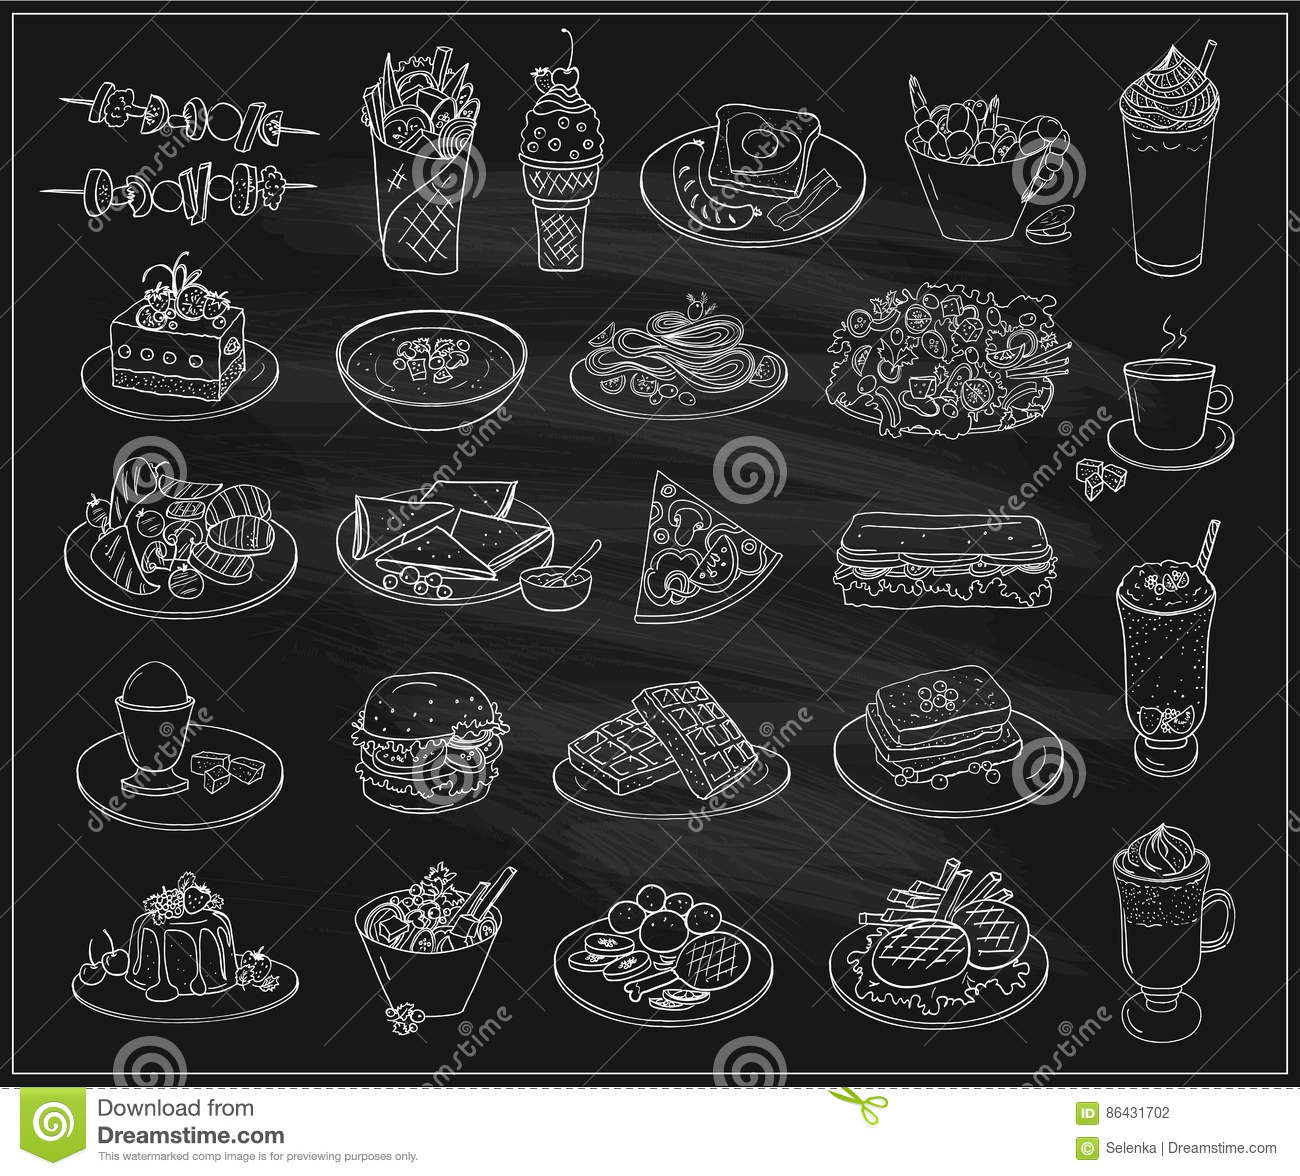 Tiré par la main illustration de symbole graphique à traits de nourriture, de desserts et de boissons assortis, ensemble de symbo